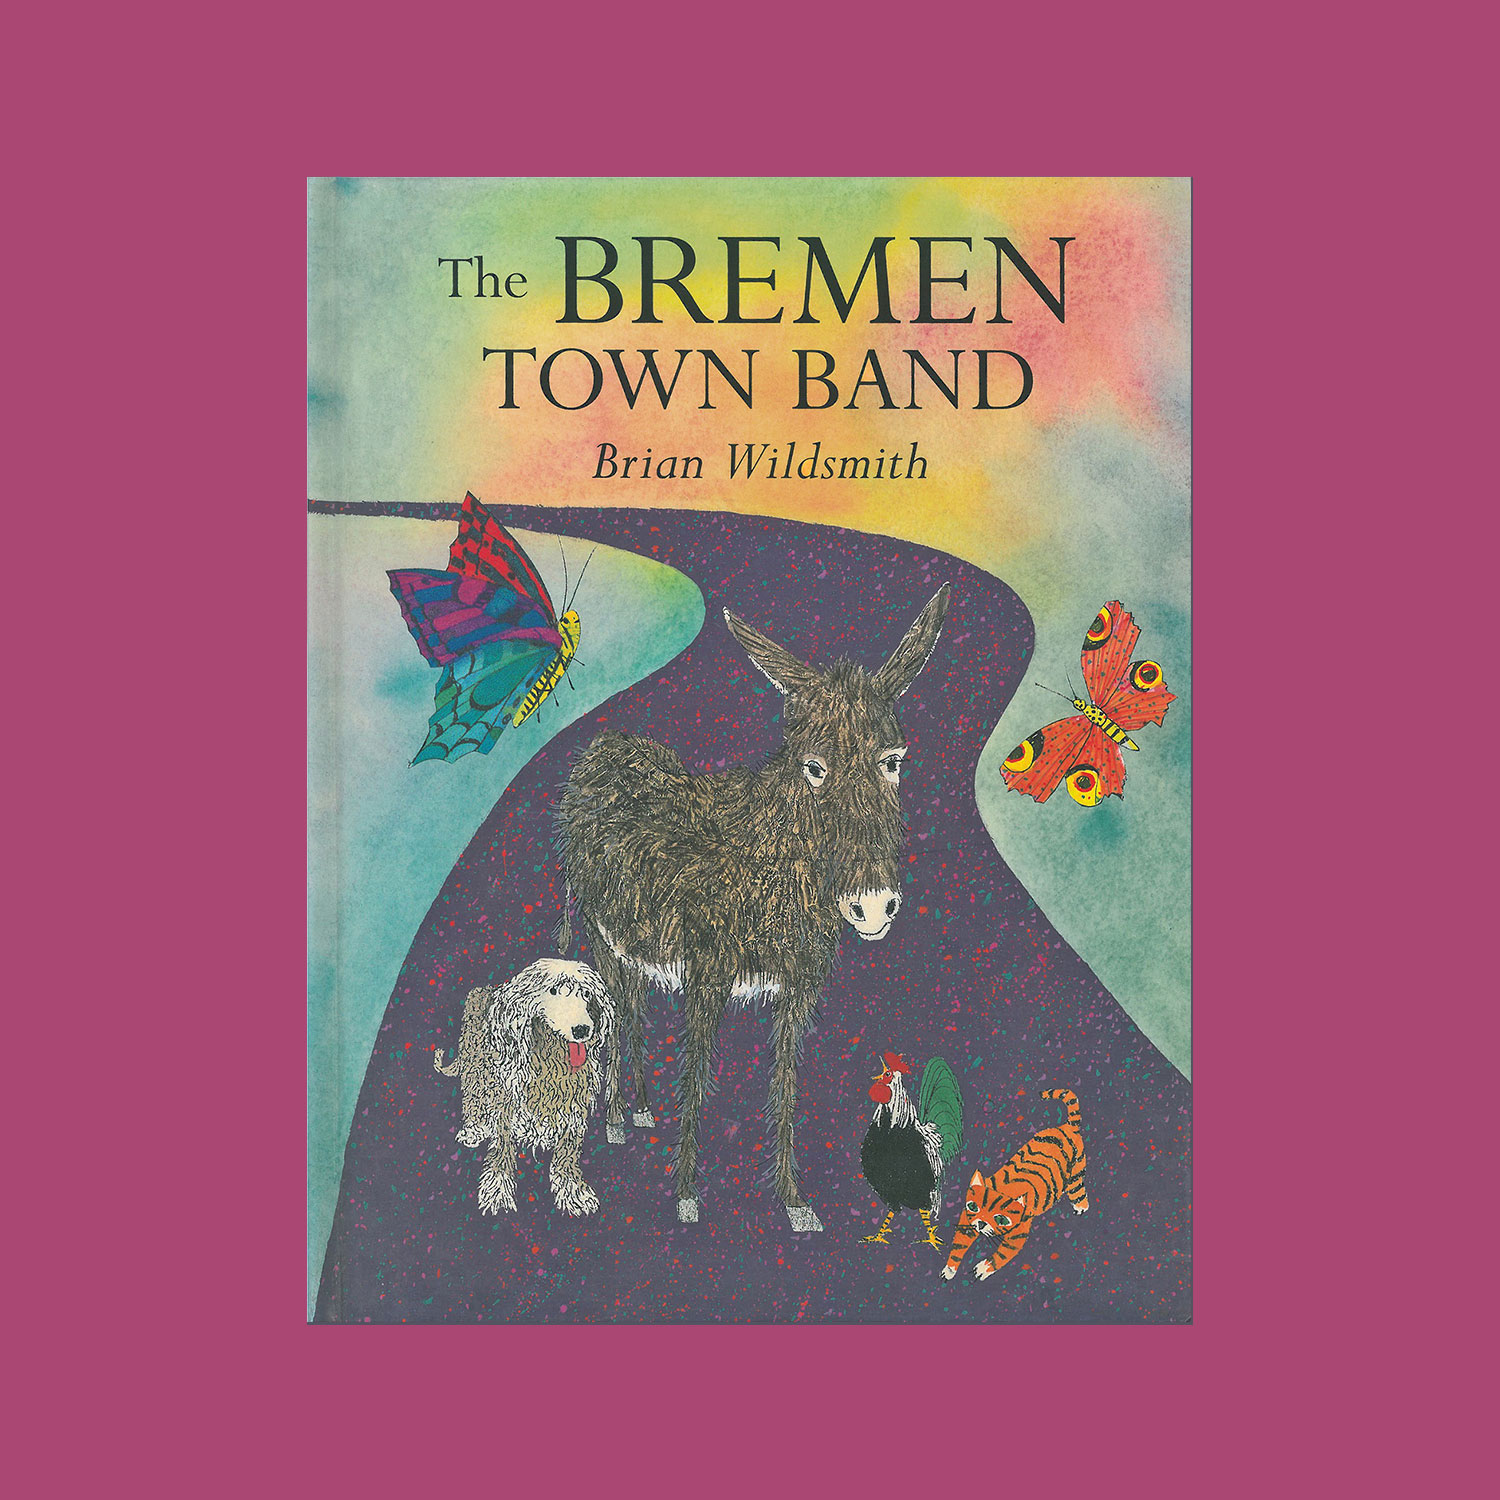 """THE BREMEN TOWN BAND - 1999. Republished as The Bremen Town Musicians in 2012""""This is the story of how a donkey, a dog, a cat and a cockerel all met one fine day. They quickly became friends deciding it would be fun to go and join the Bremen Town Band. Off they went down the highway, singing and joking together. On the way they passed through a forest where the most incredible adventure awaited them.""""""""This is a gorgeous picture book. The vividly colourful and highly detailed illustrations are a delight…""""Dolores Klinsky Walker"""